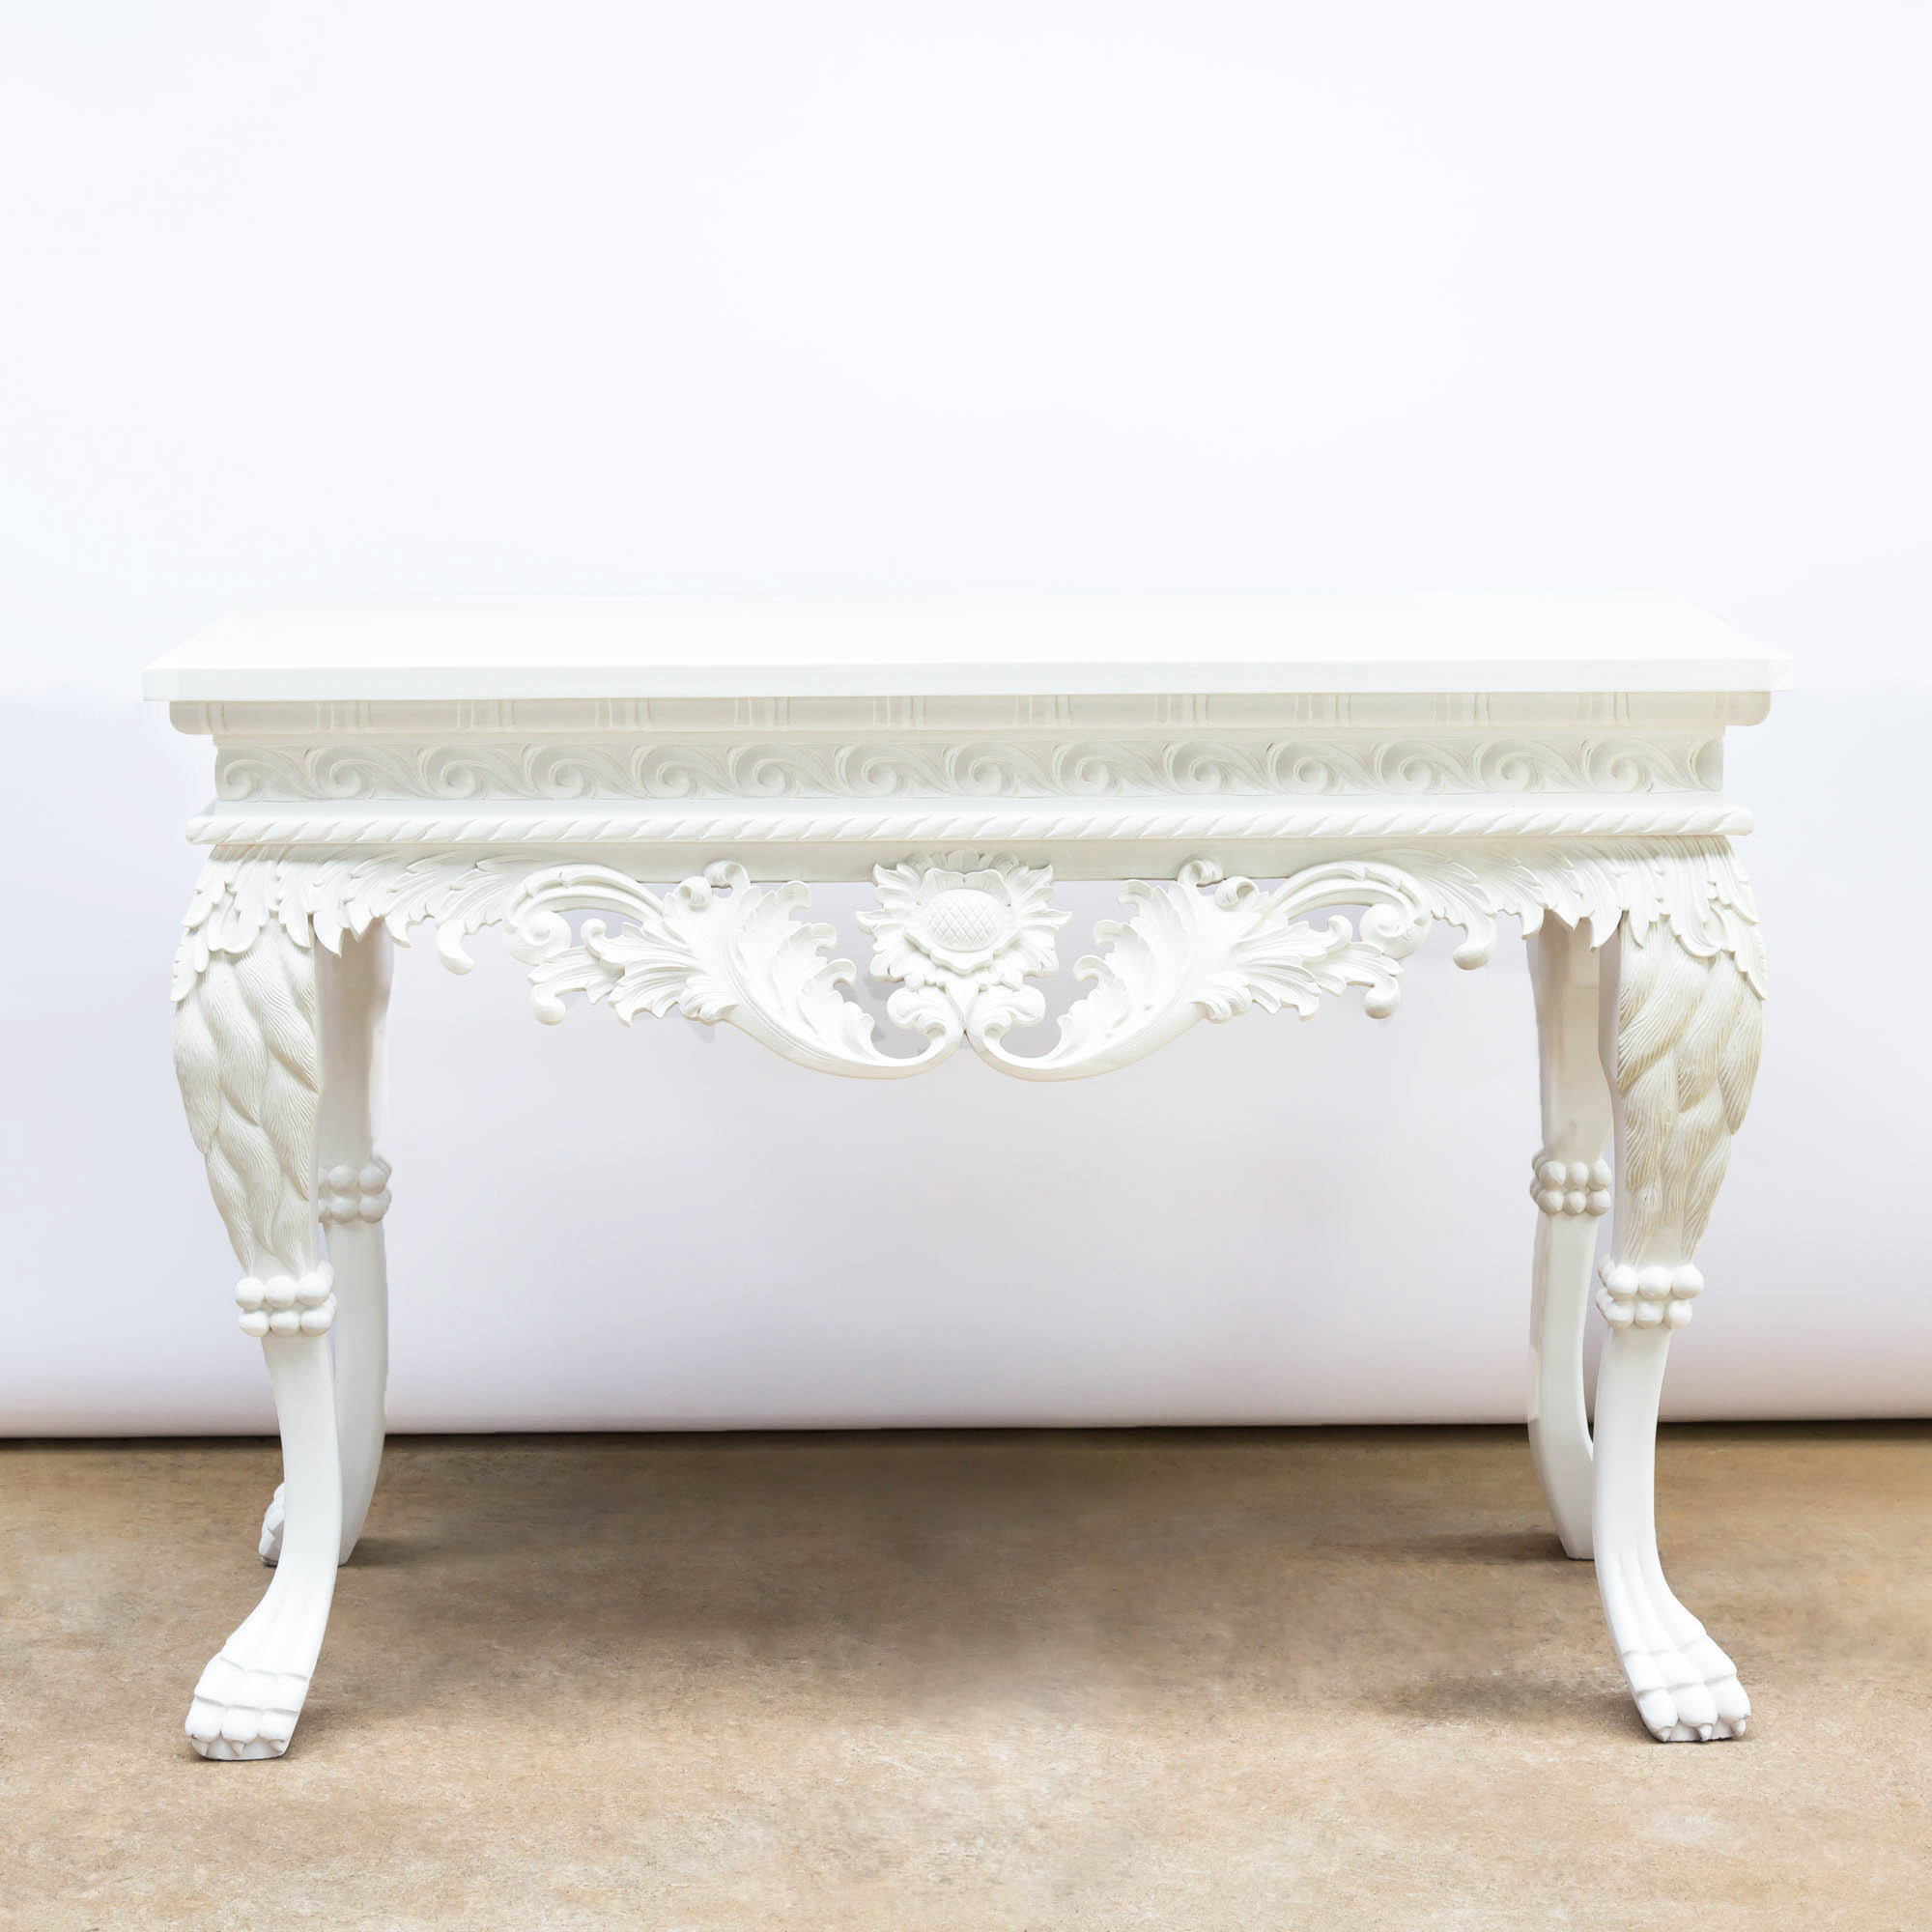 Irish Georgian Console Table